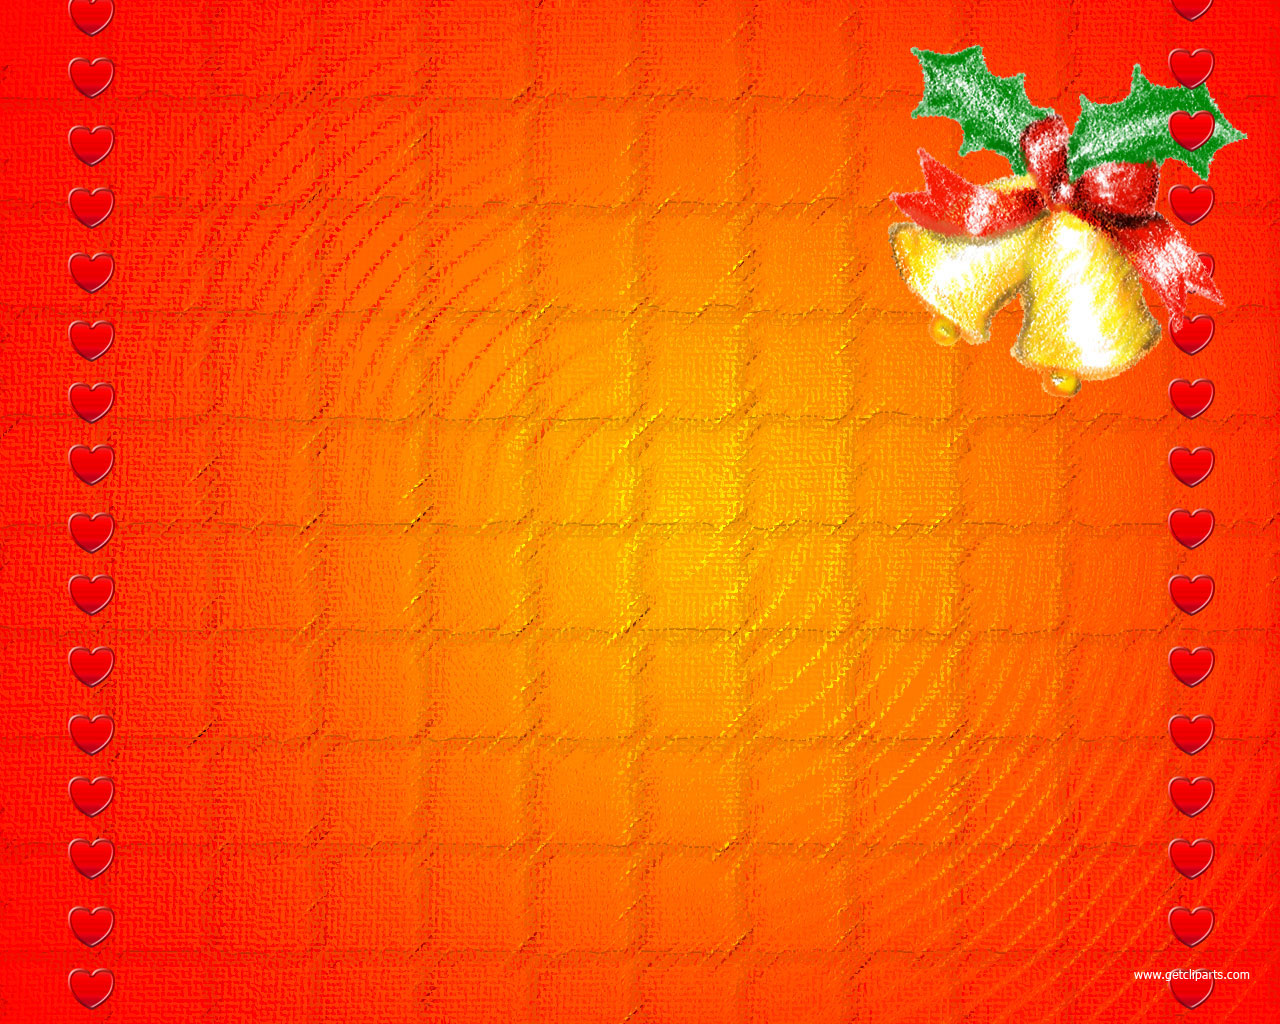 Christmas Powerpoint Backgrounds.Getcliparts Visual Communication Designs Blog Archive